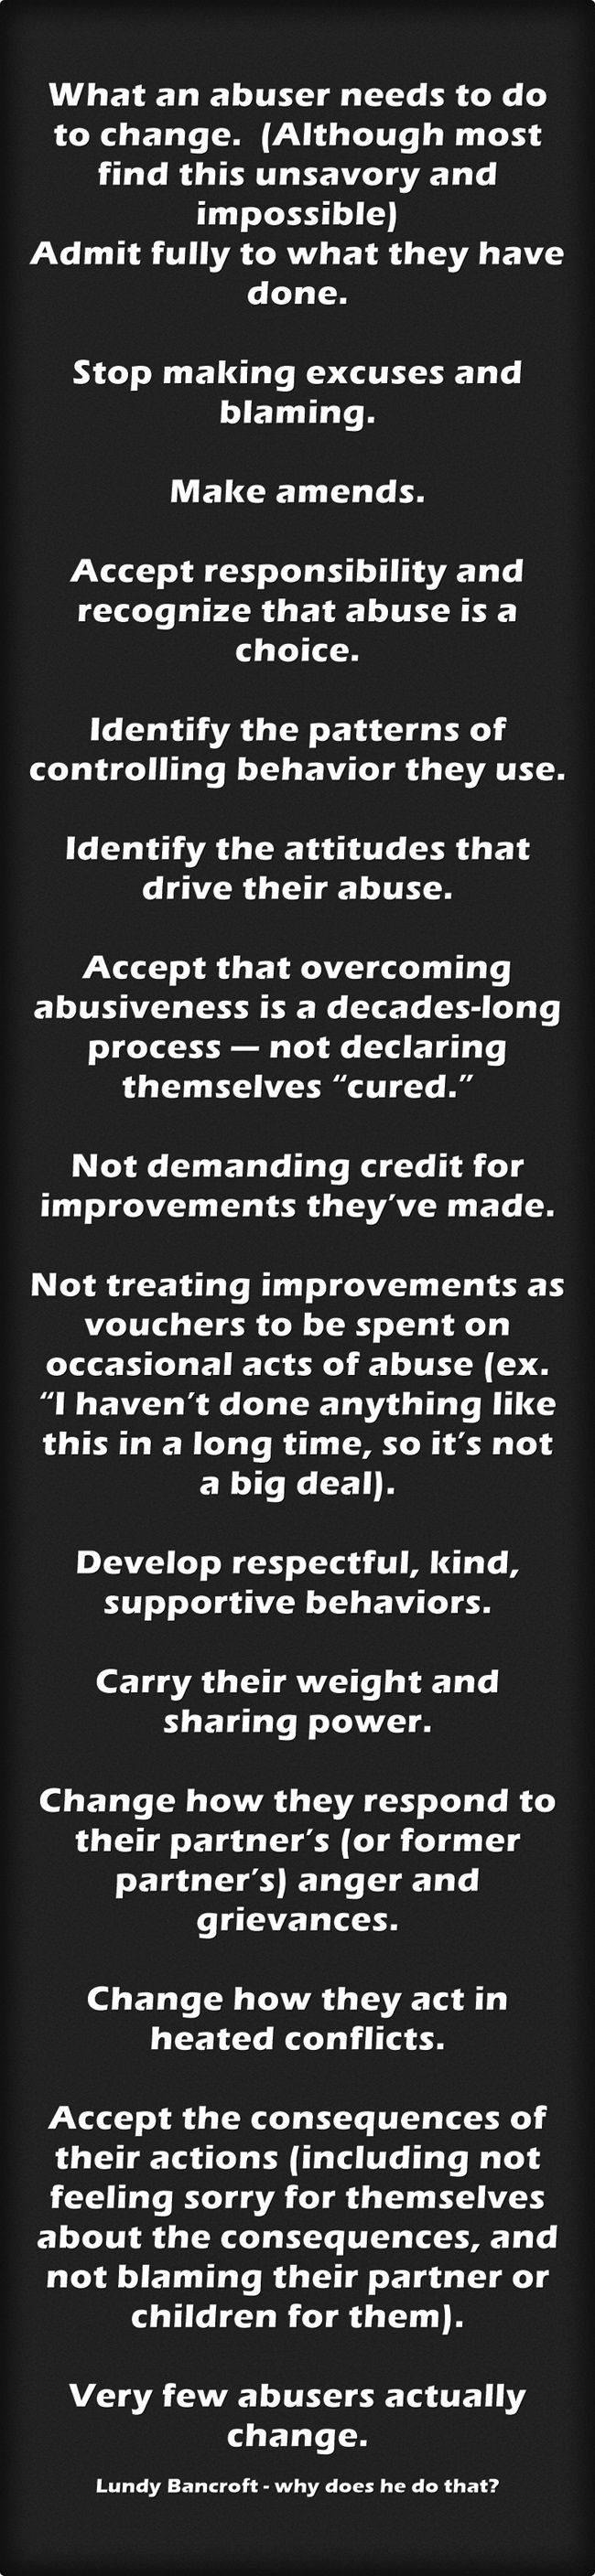 "What an abuser needs to do to change. (Although most find this unsavory and impossible) Admit fully to what they have done. Stop making excuses and blaming. Make amends. Accept responsibility and recognize that abuse is a choice. Identify the patterns of controlling behavior they use. Identify the attitudes that drive their abuse. Accept that overcoming abusiveness is a decades-long process — not declaring themselves ""cured."" Not demanding credit for improvements..."